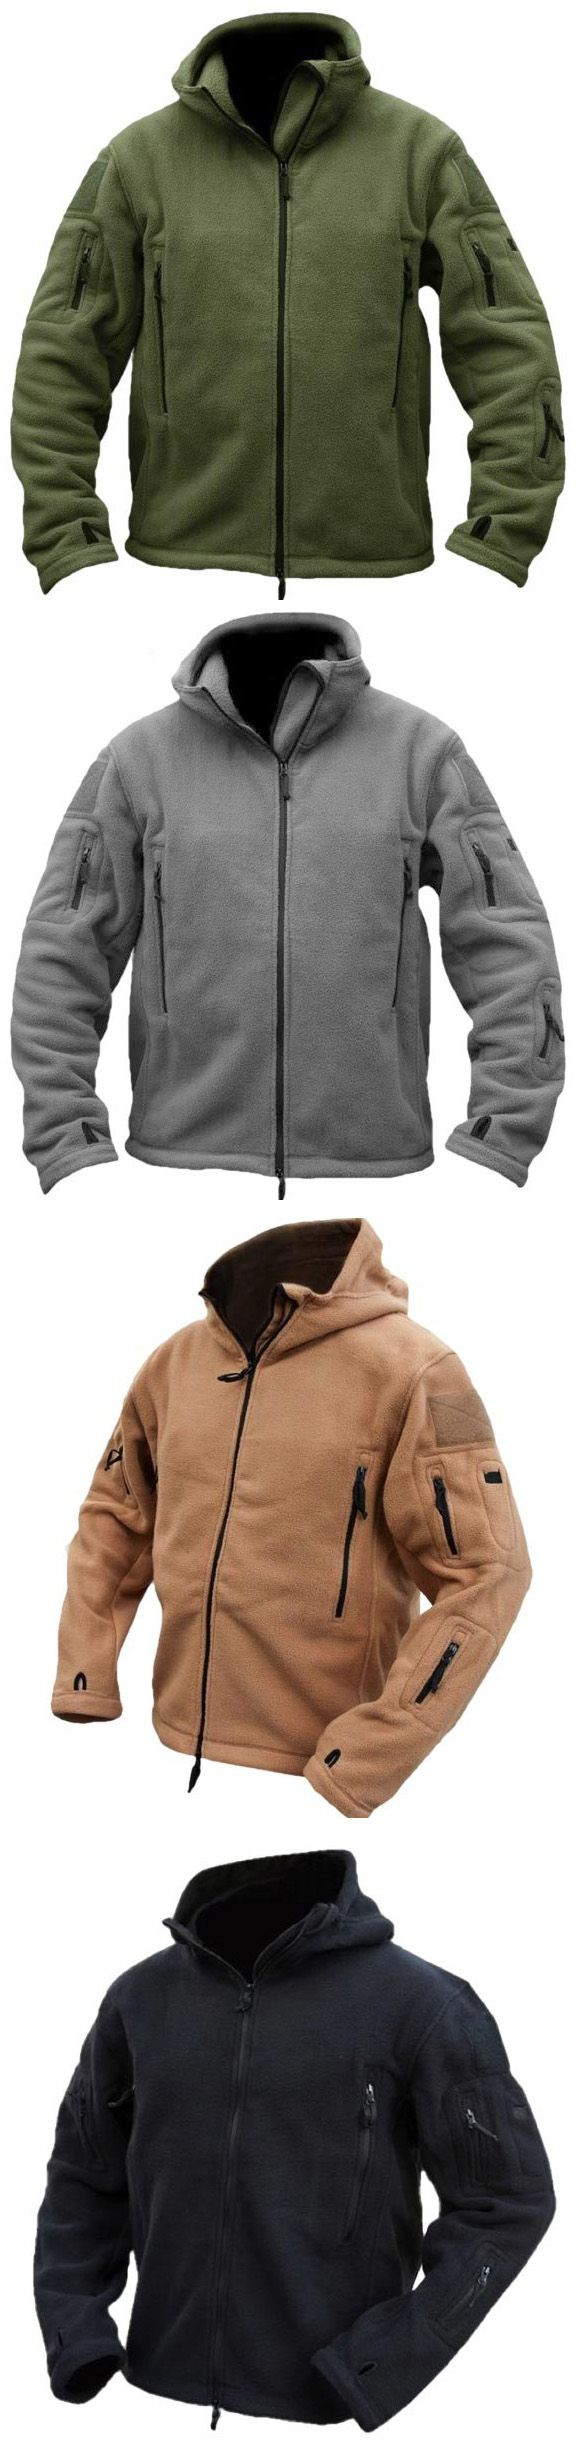 US$40.98#Hooded Outdoor Jacket for Winter